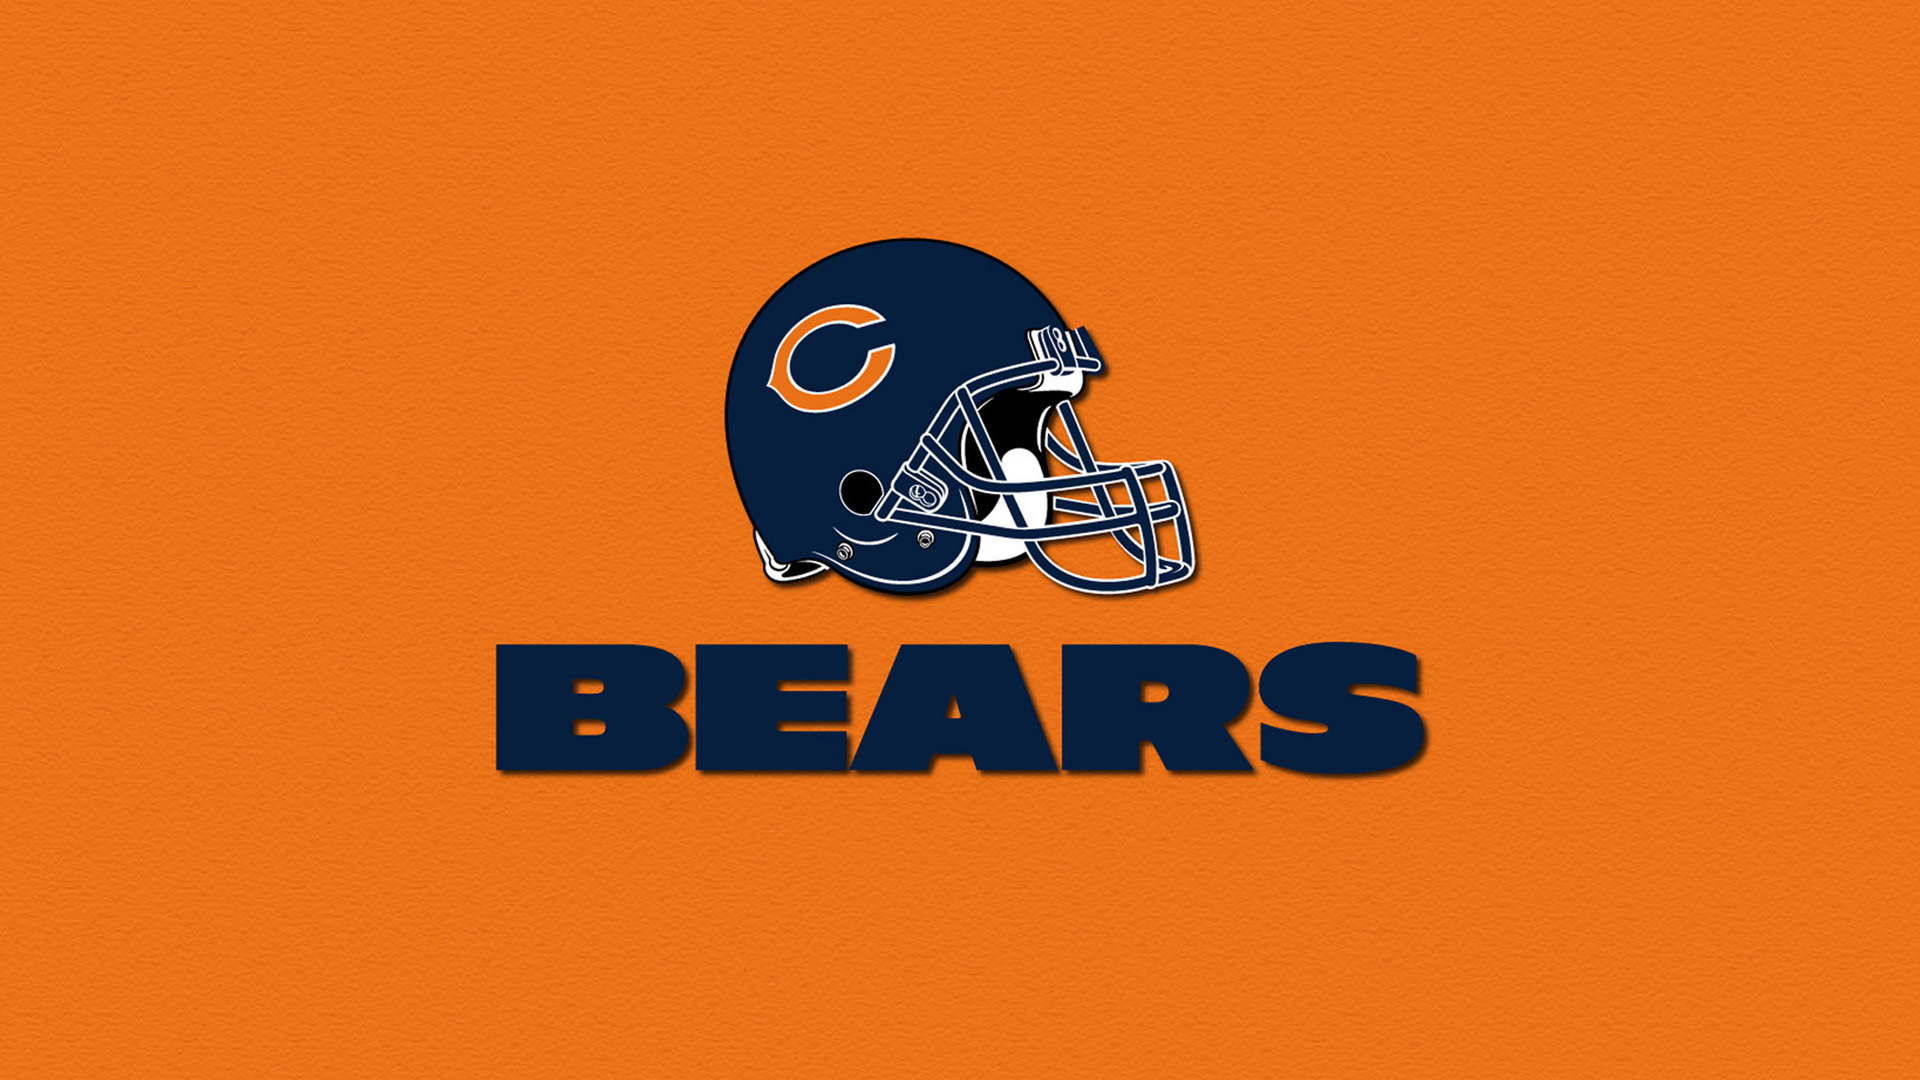 Collection of Chicago Bears Backgrounds, Chicago Bears HQFX Wallpapers 1920x1080